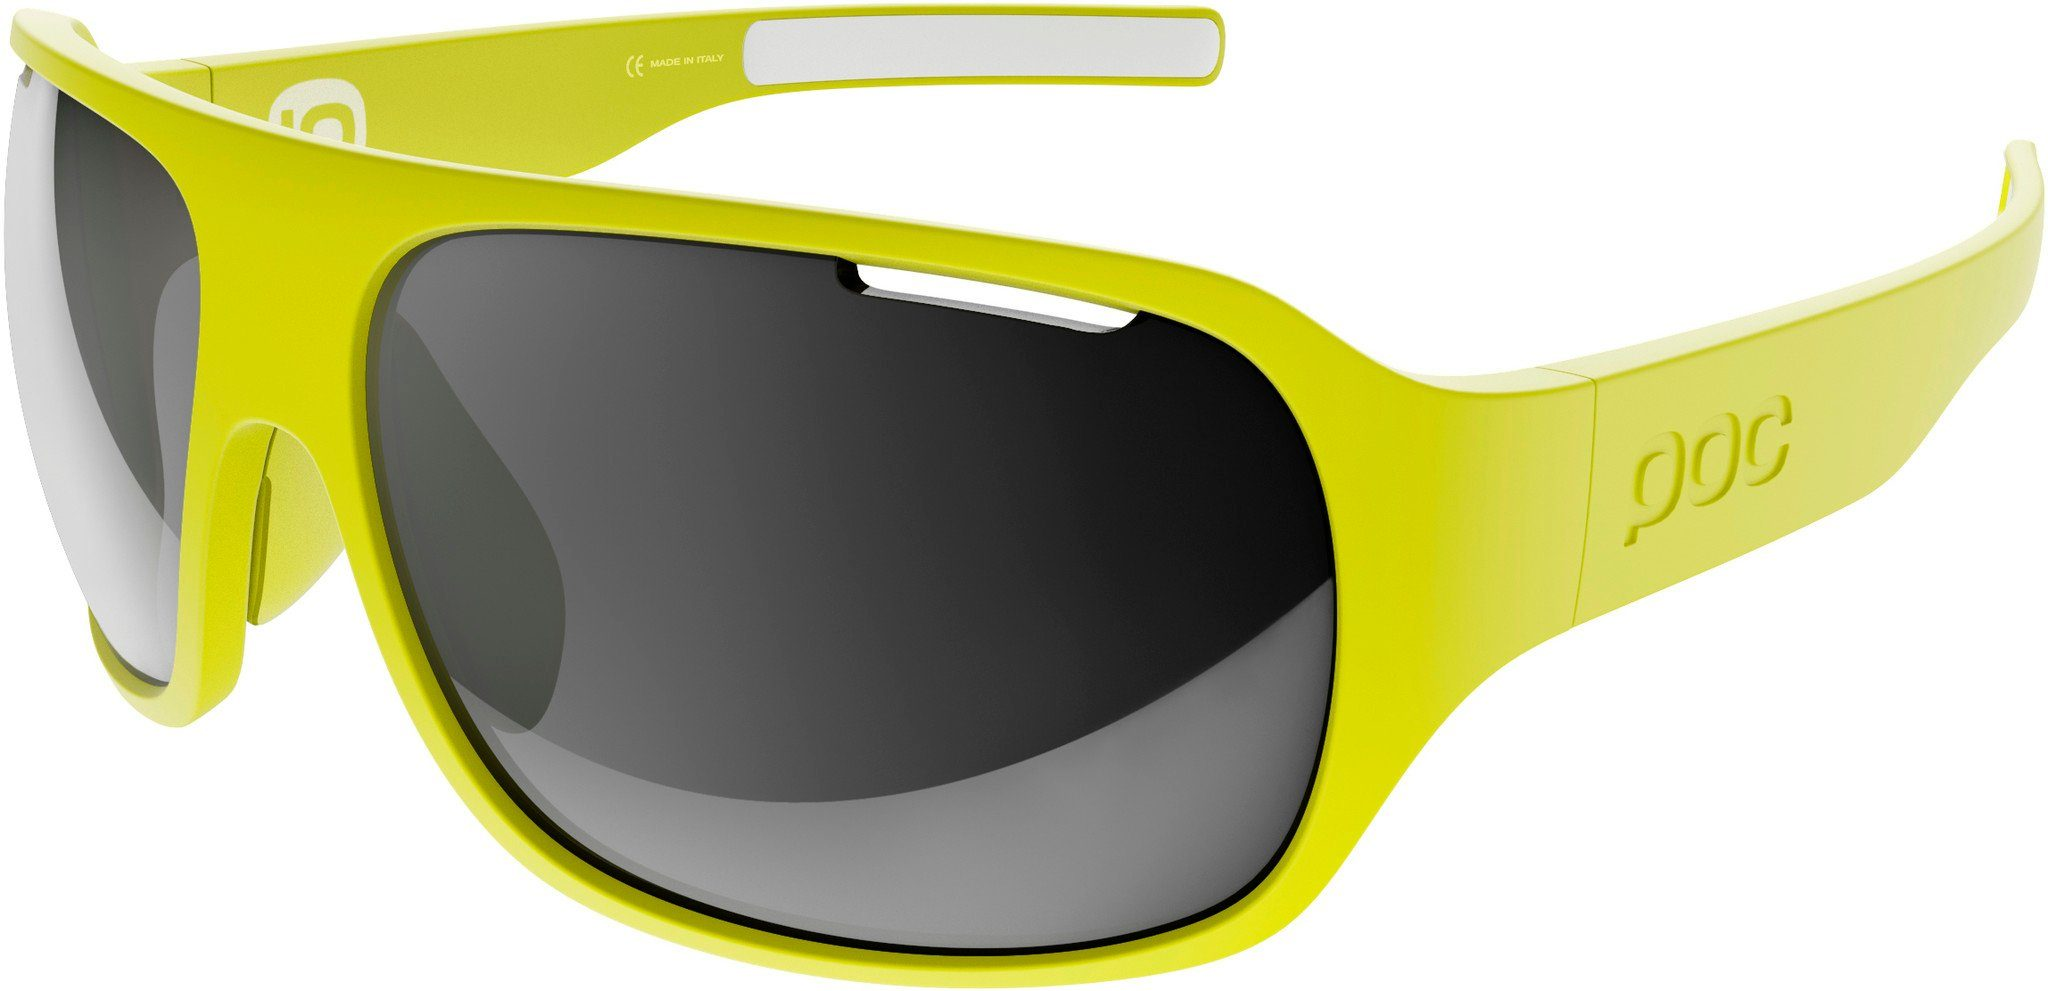 POC Radsportbrille »DO Flow Glasses«